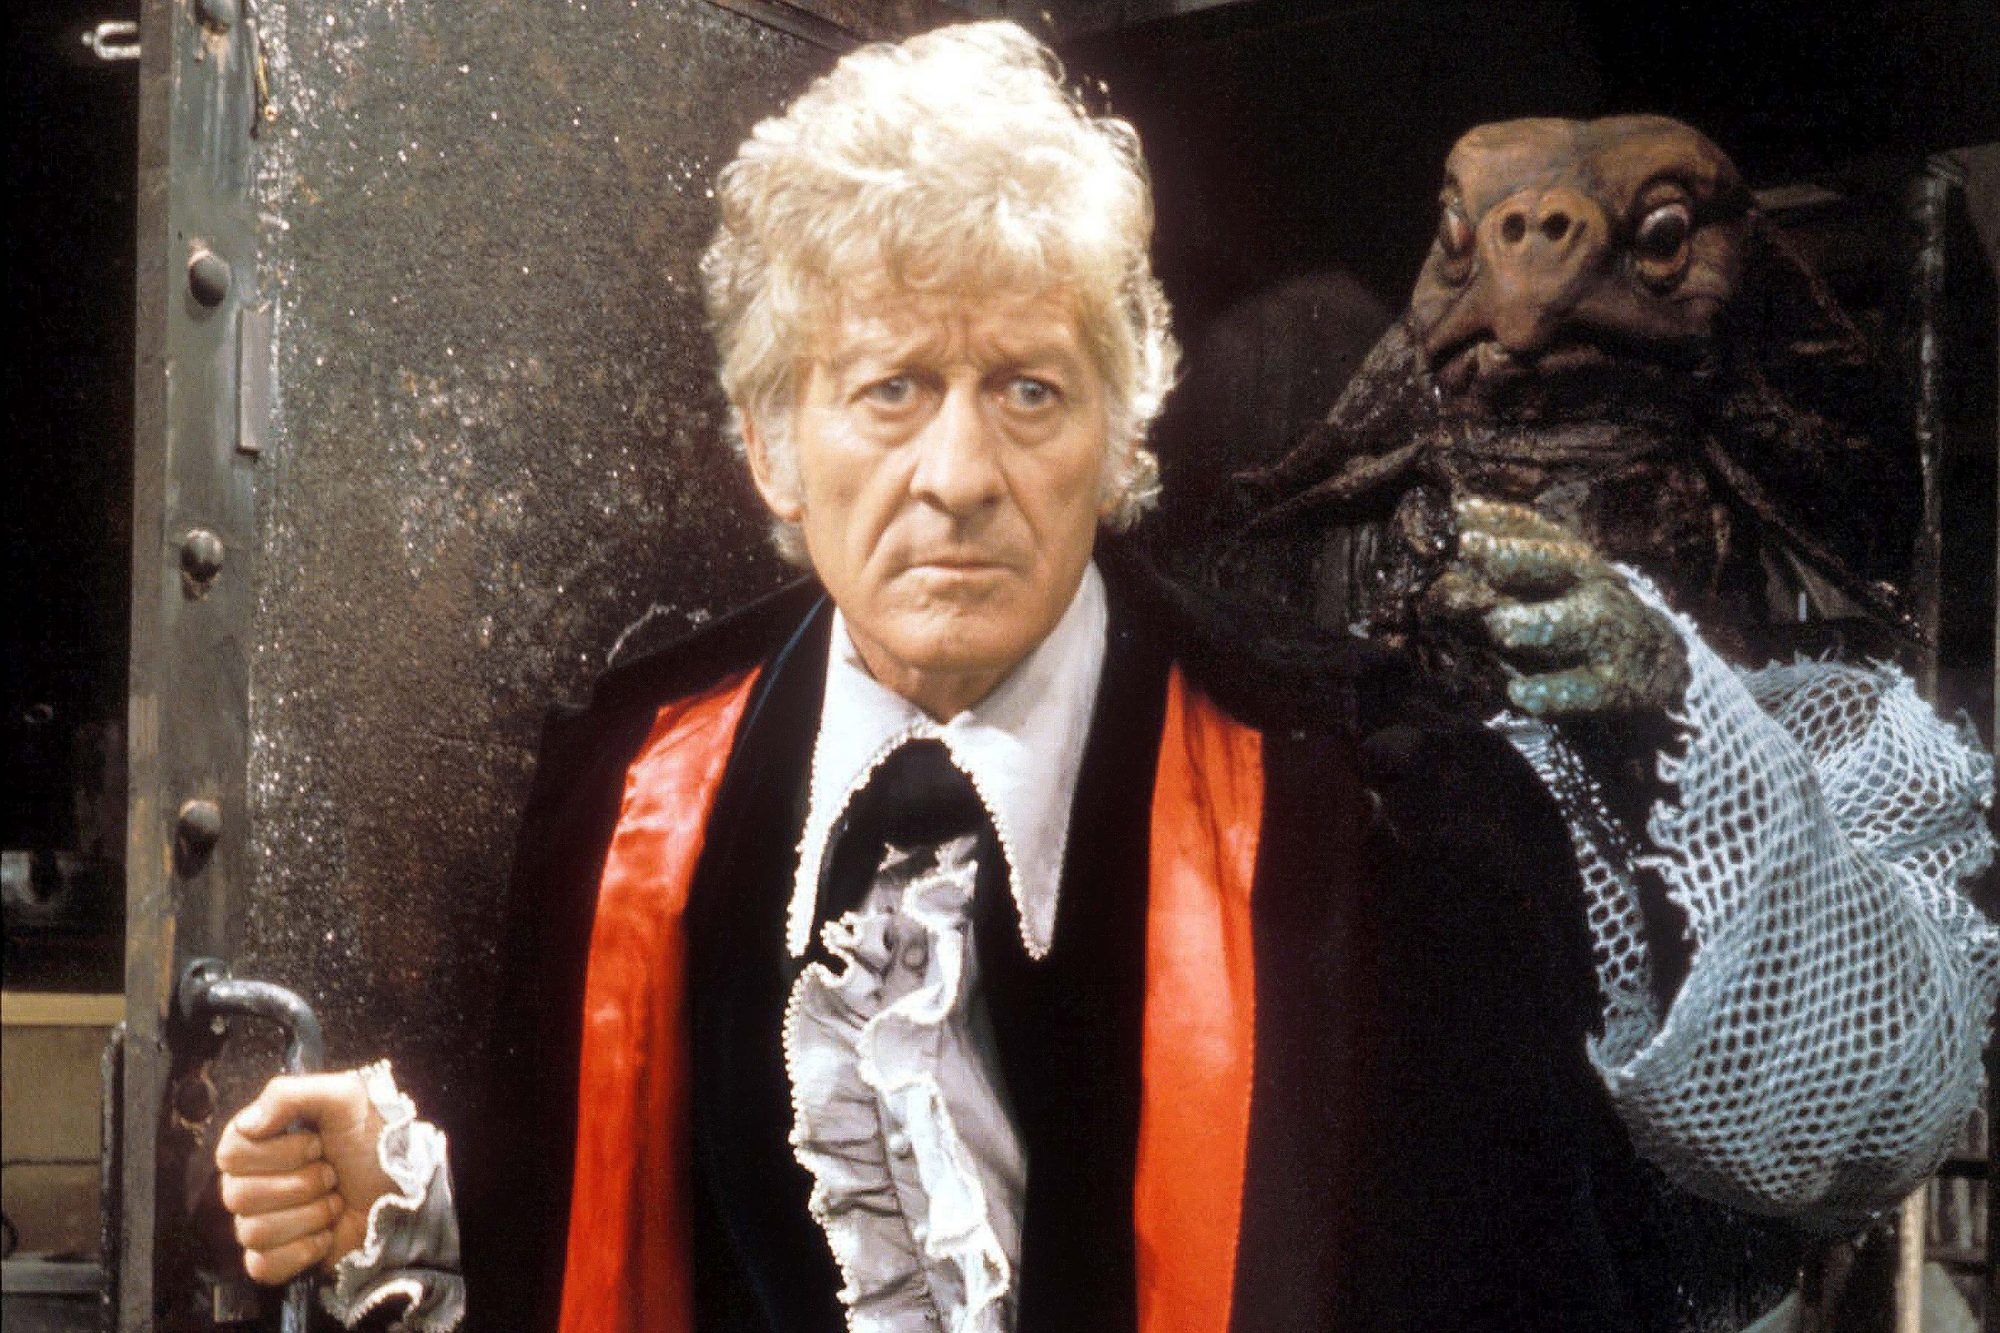 DOCTOR WHO, Jon Pertwee, 1963-89. photo: ©BBC / courtesy: Everett Collection